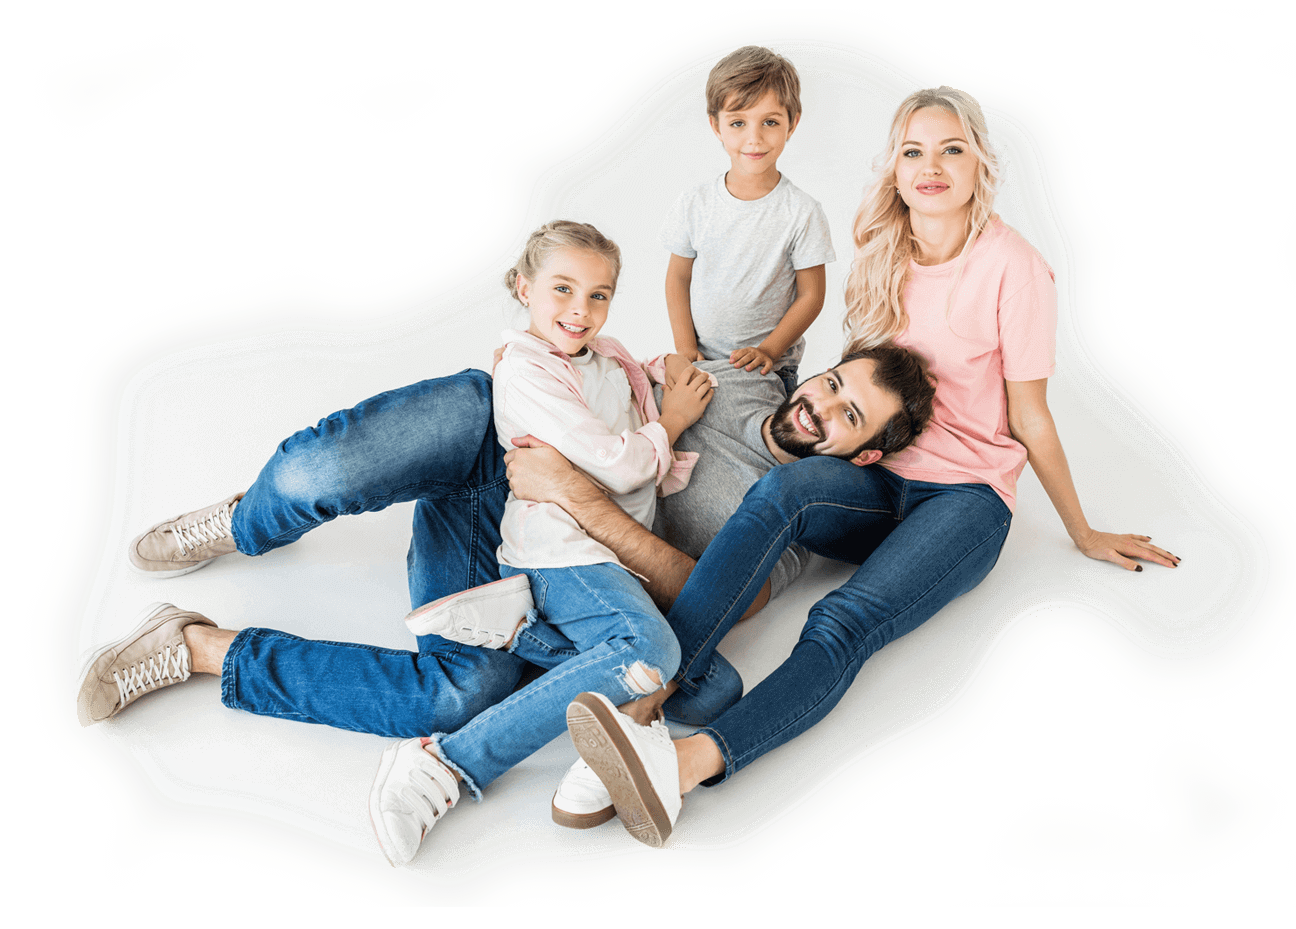 comfortable family, thanks to Boelcke.